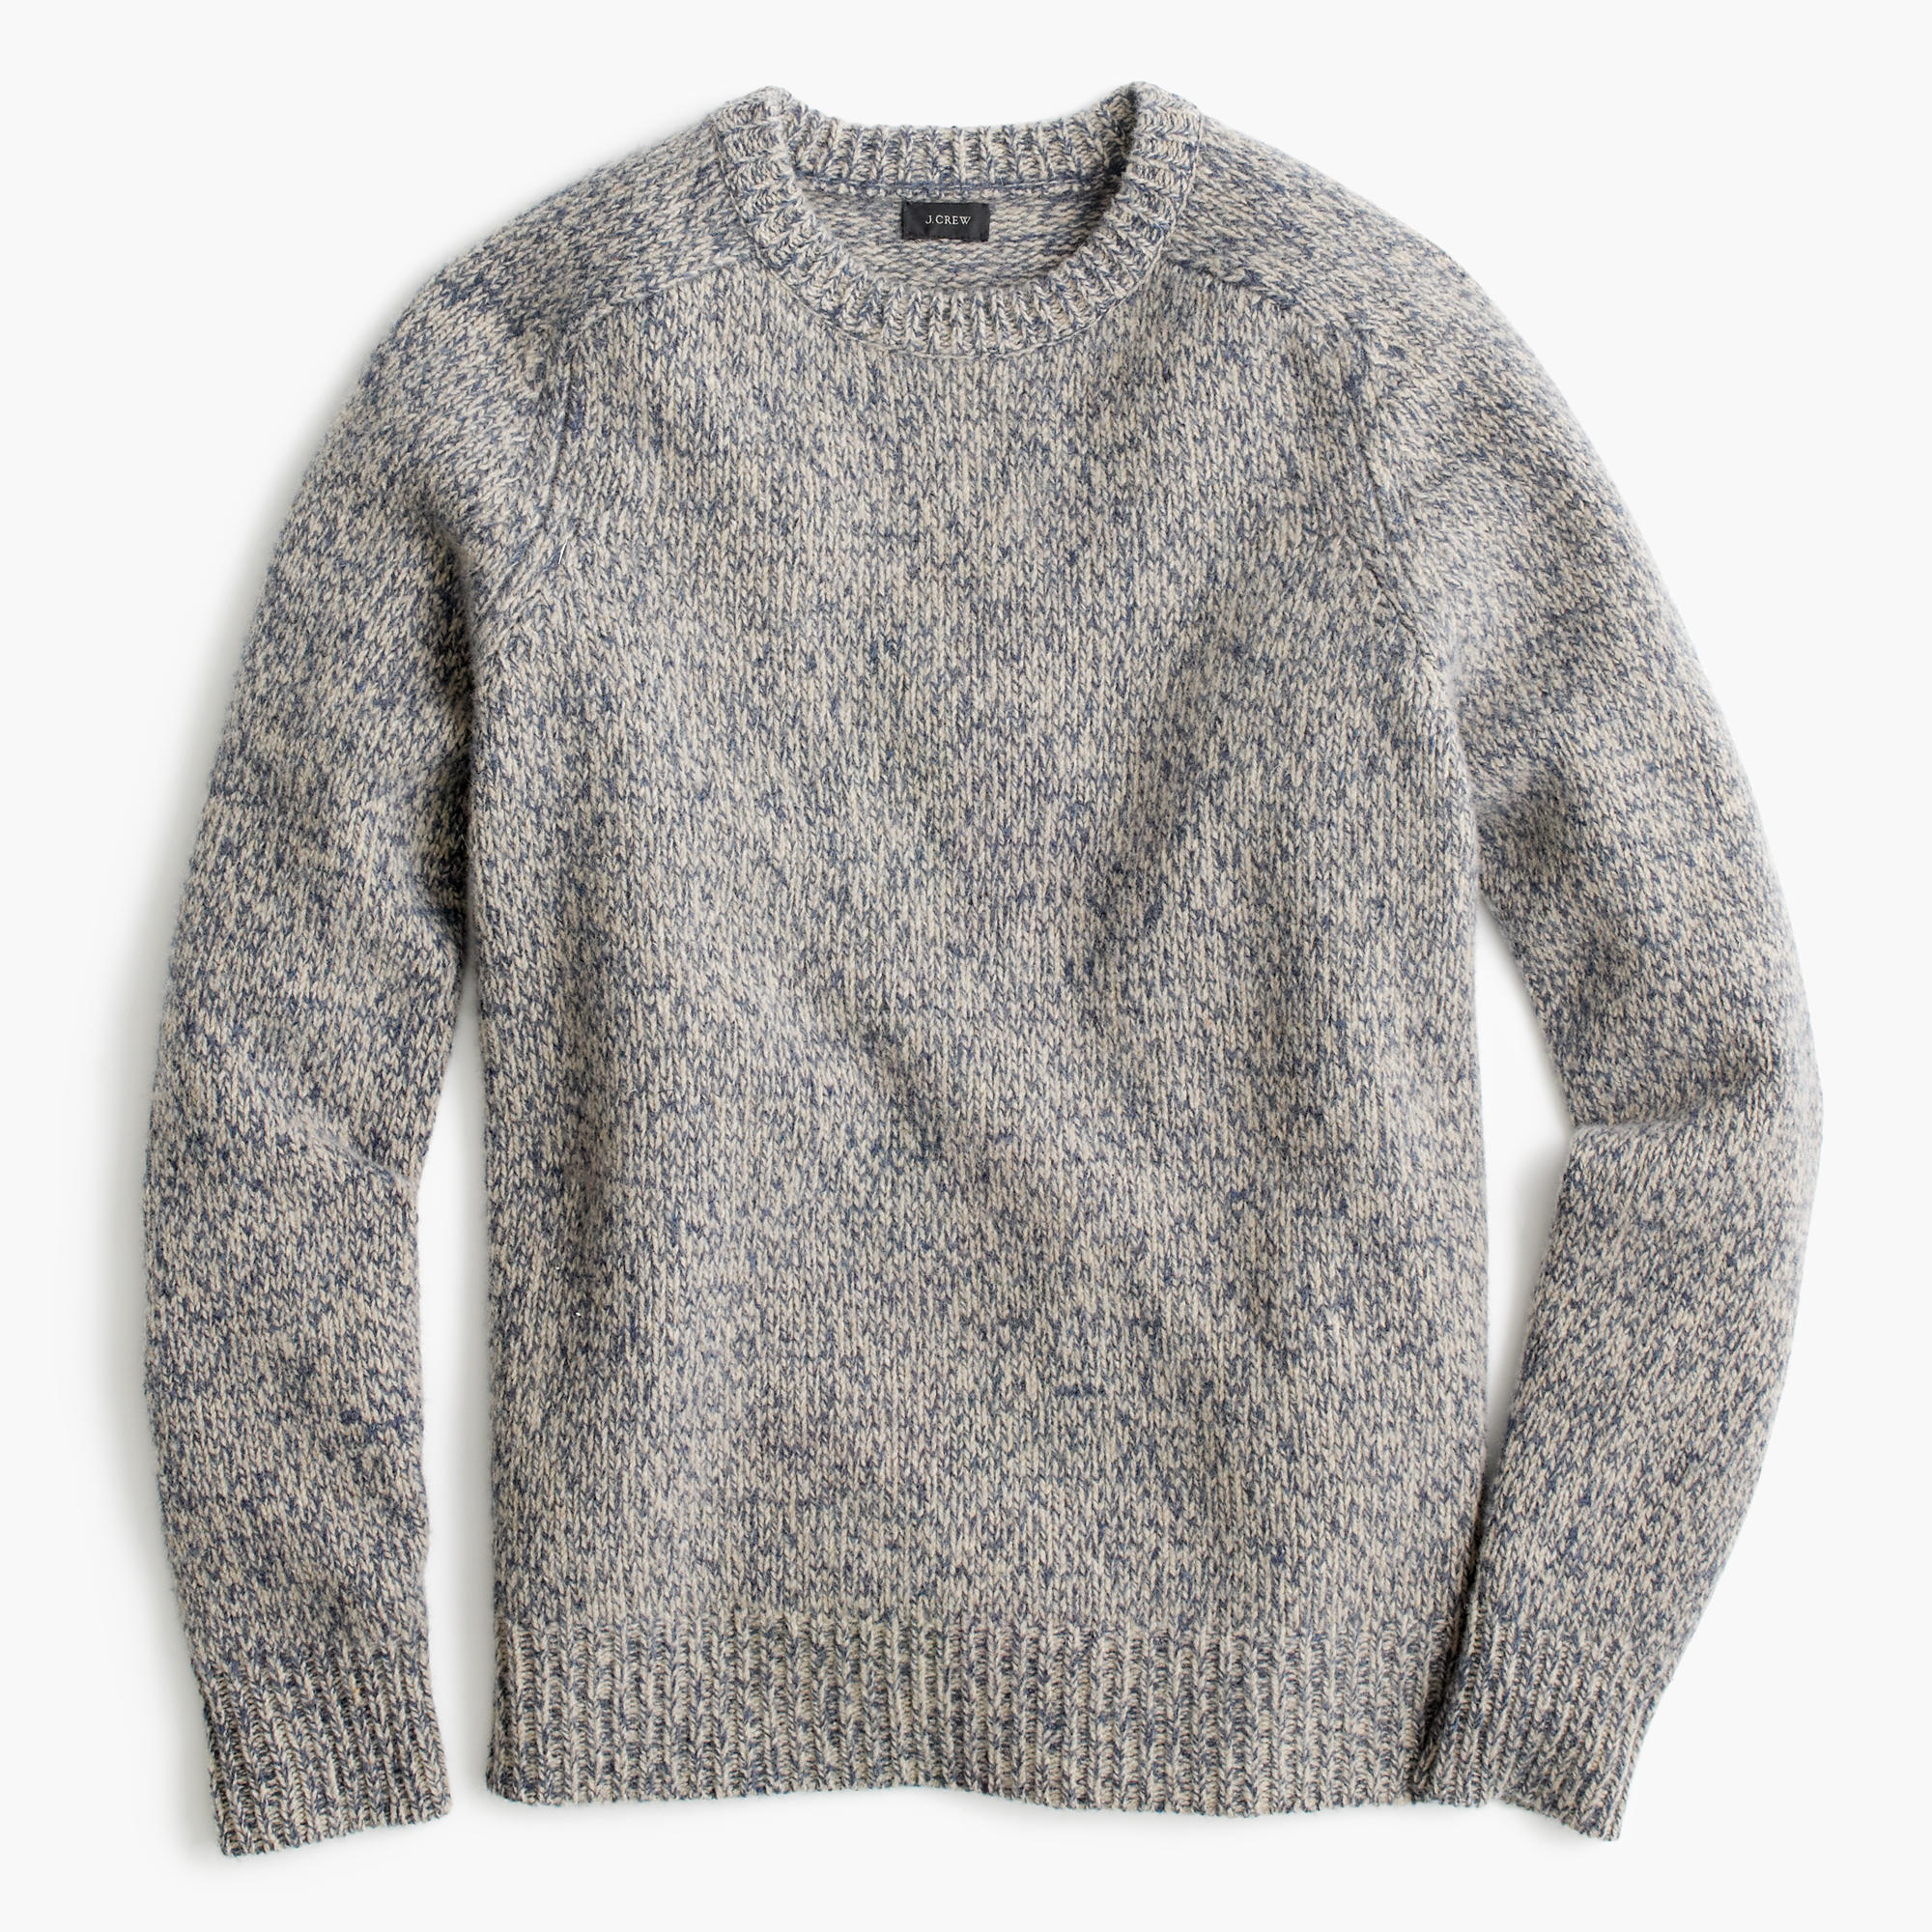 Brushed Lambswool Sweater : Men's Sweaters | J.Crew